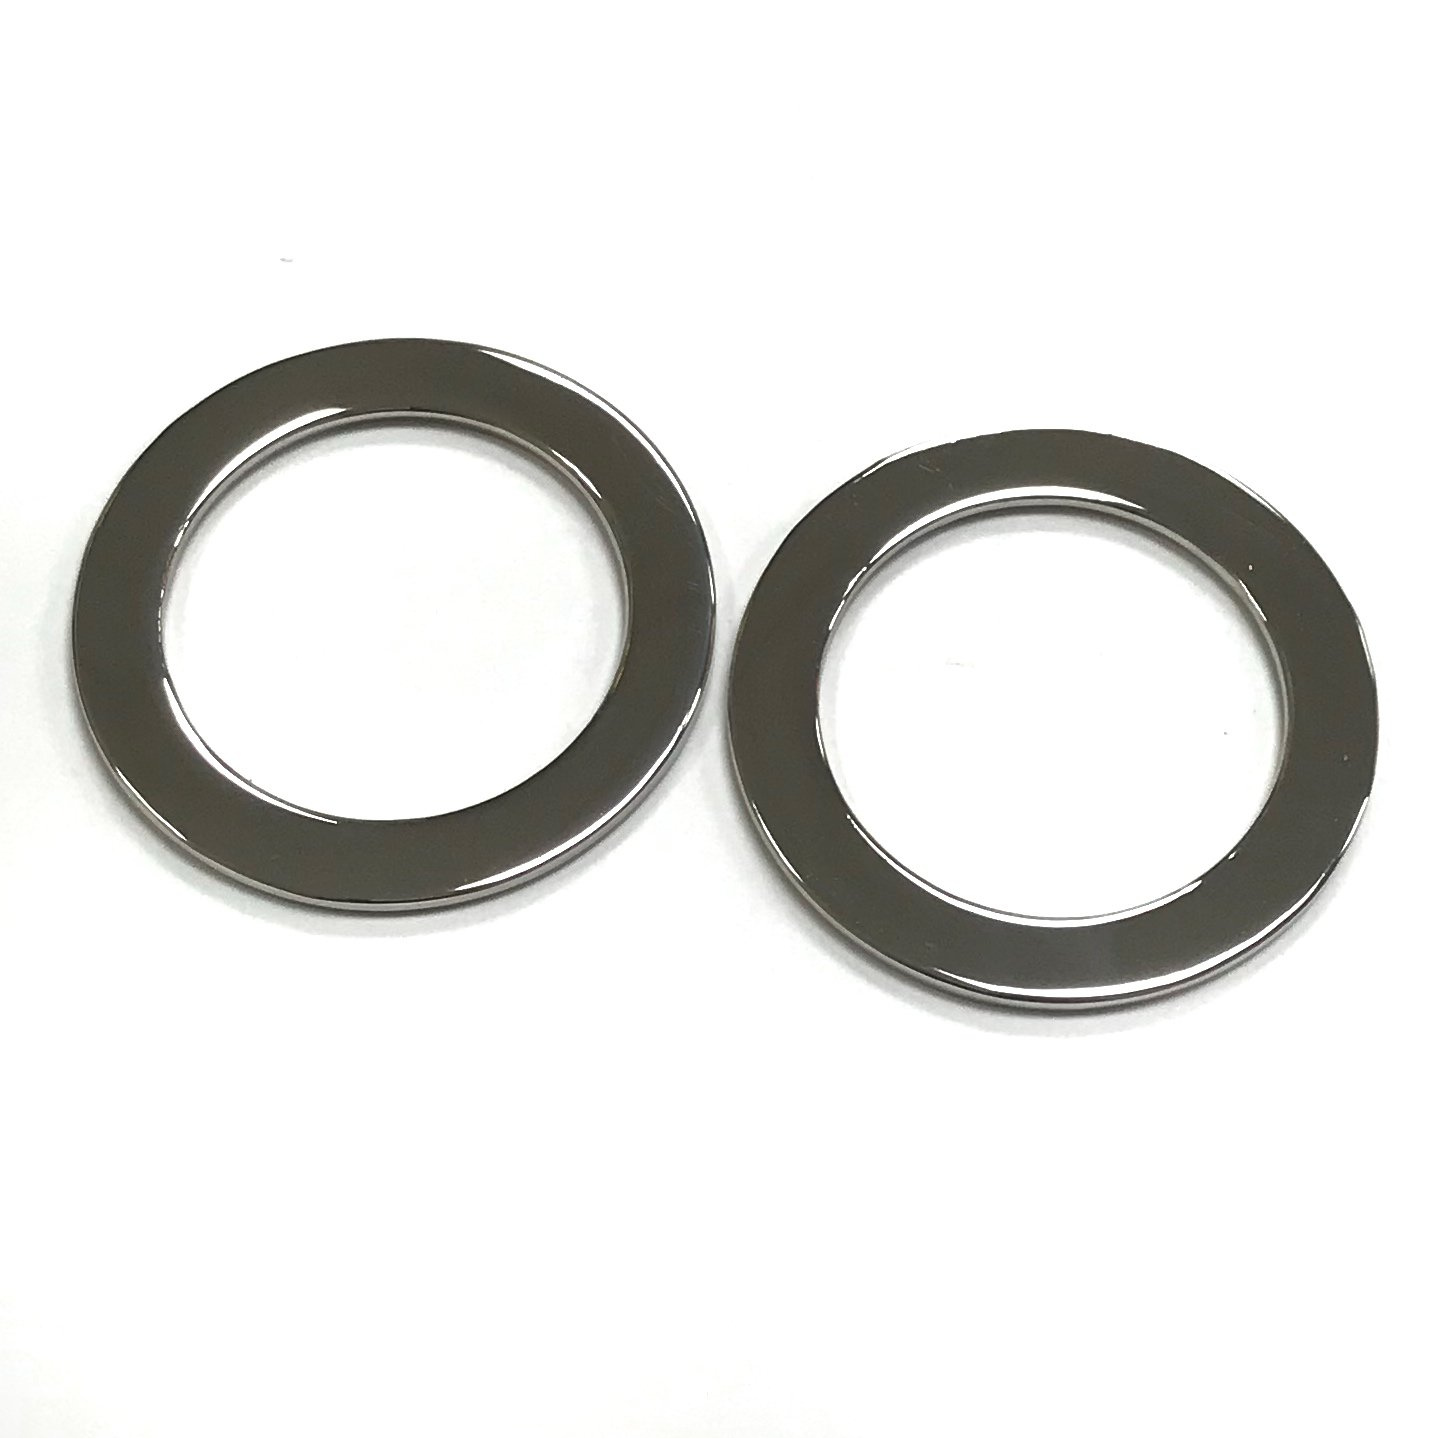 O Ring Set of 2 - 1 1/2